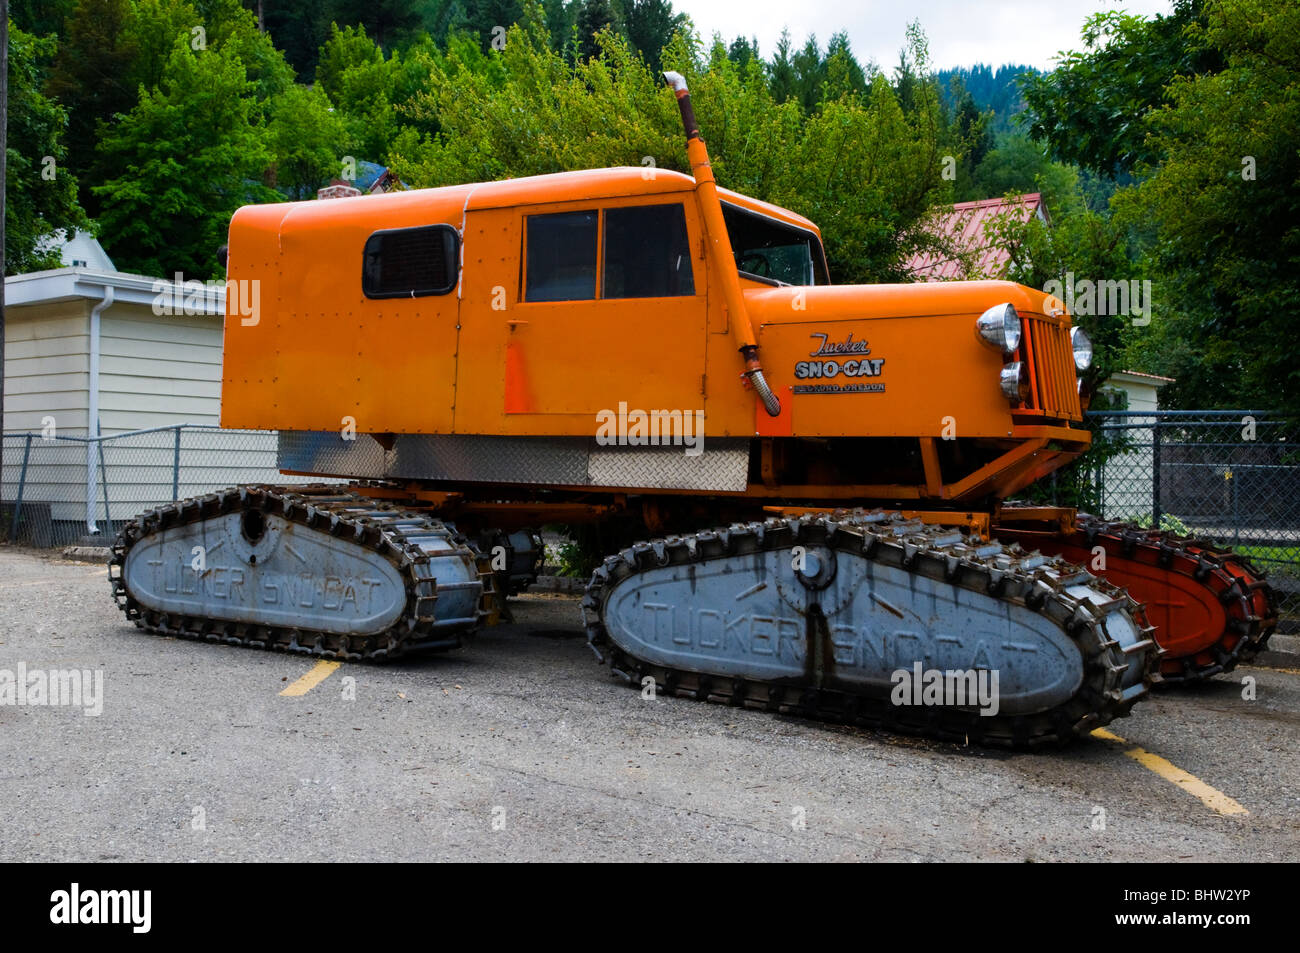 A (snow cat) (Sno-Cat) winter transport vehicle in Wallace Idaho - Stock Image